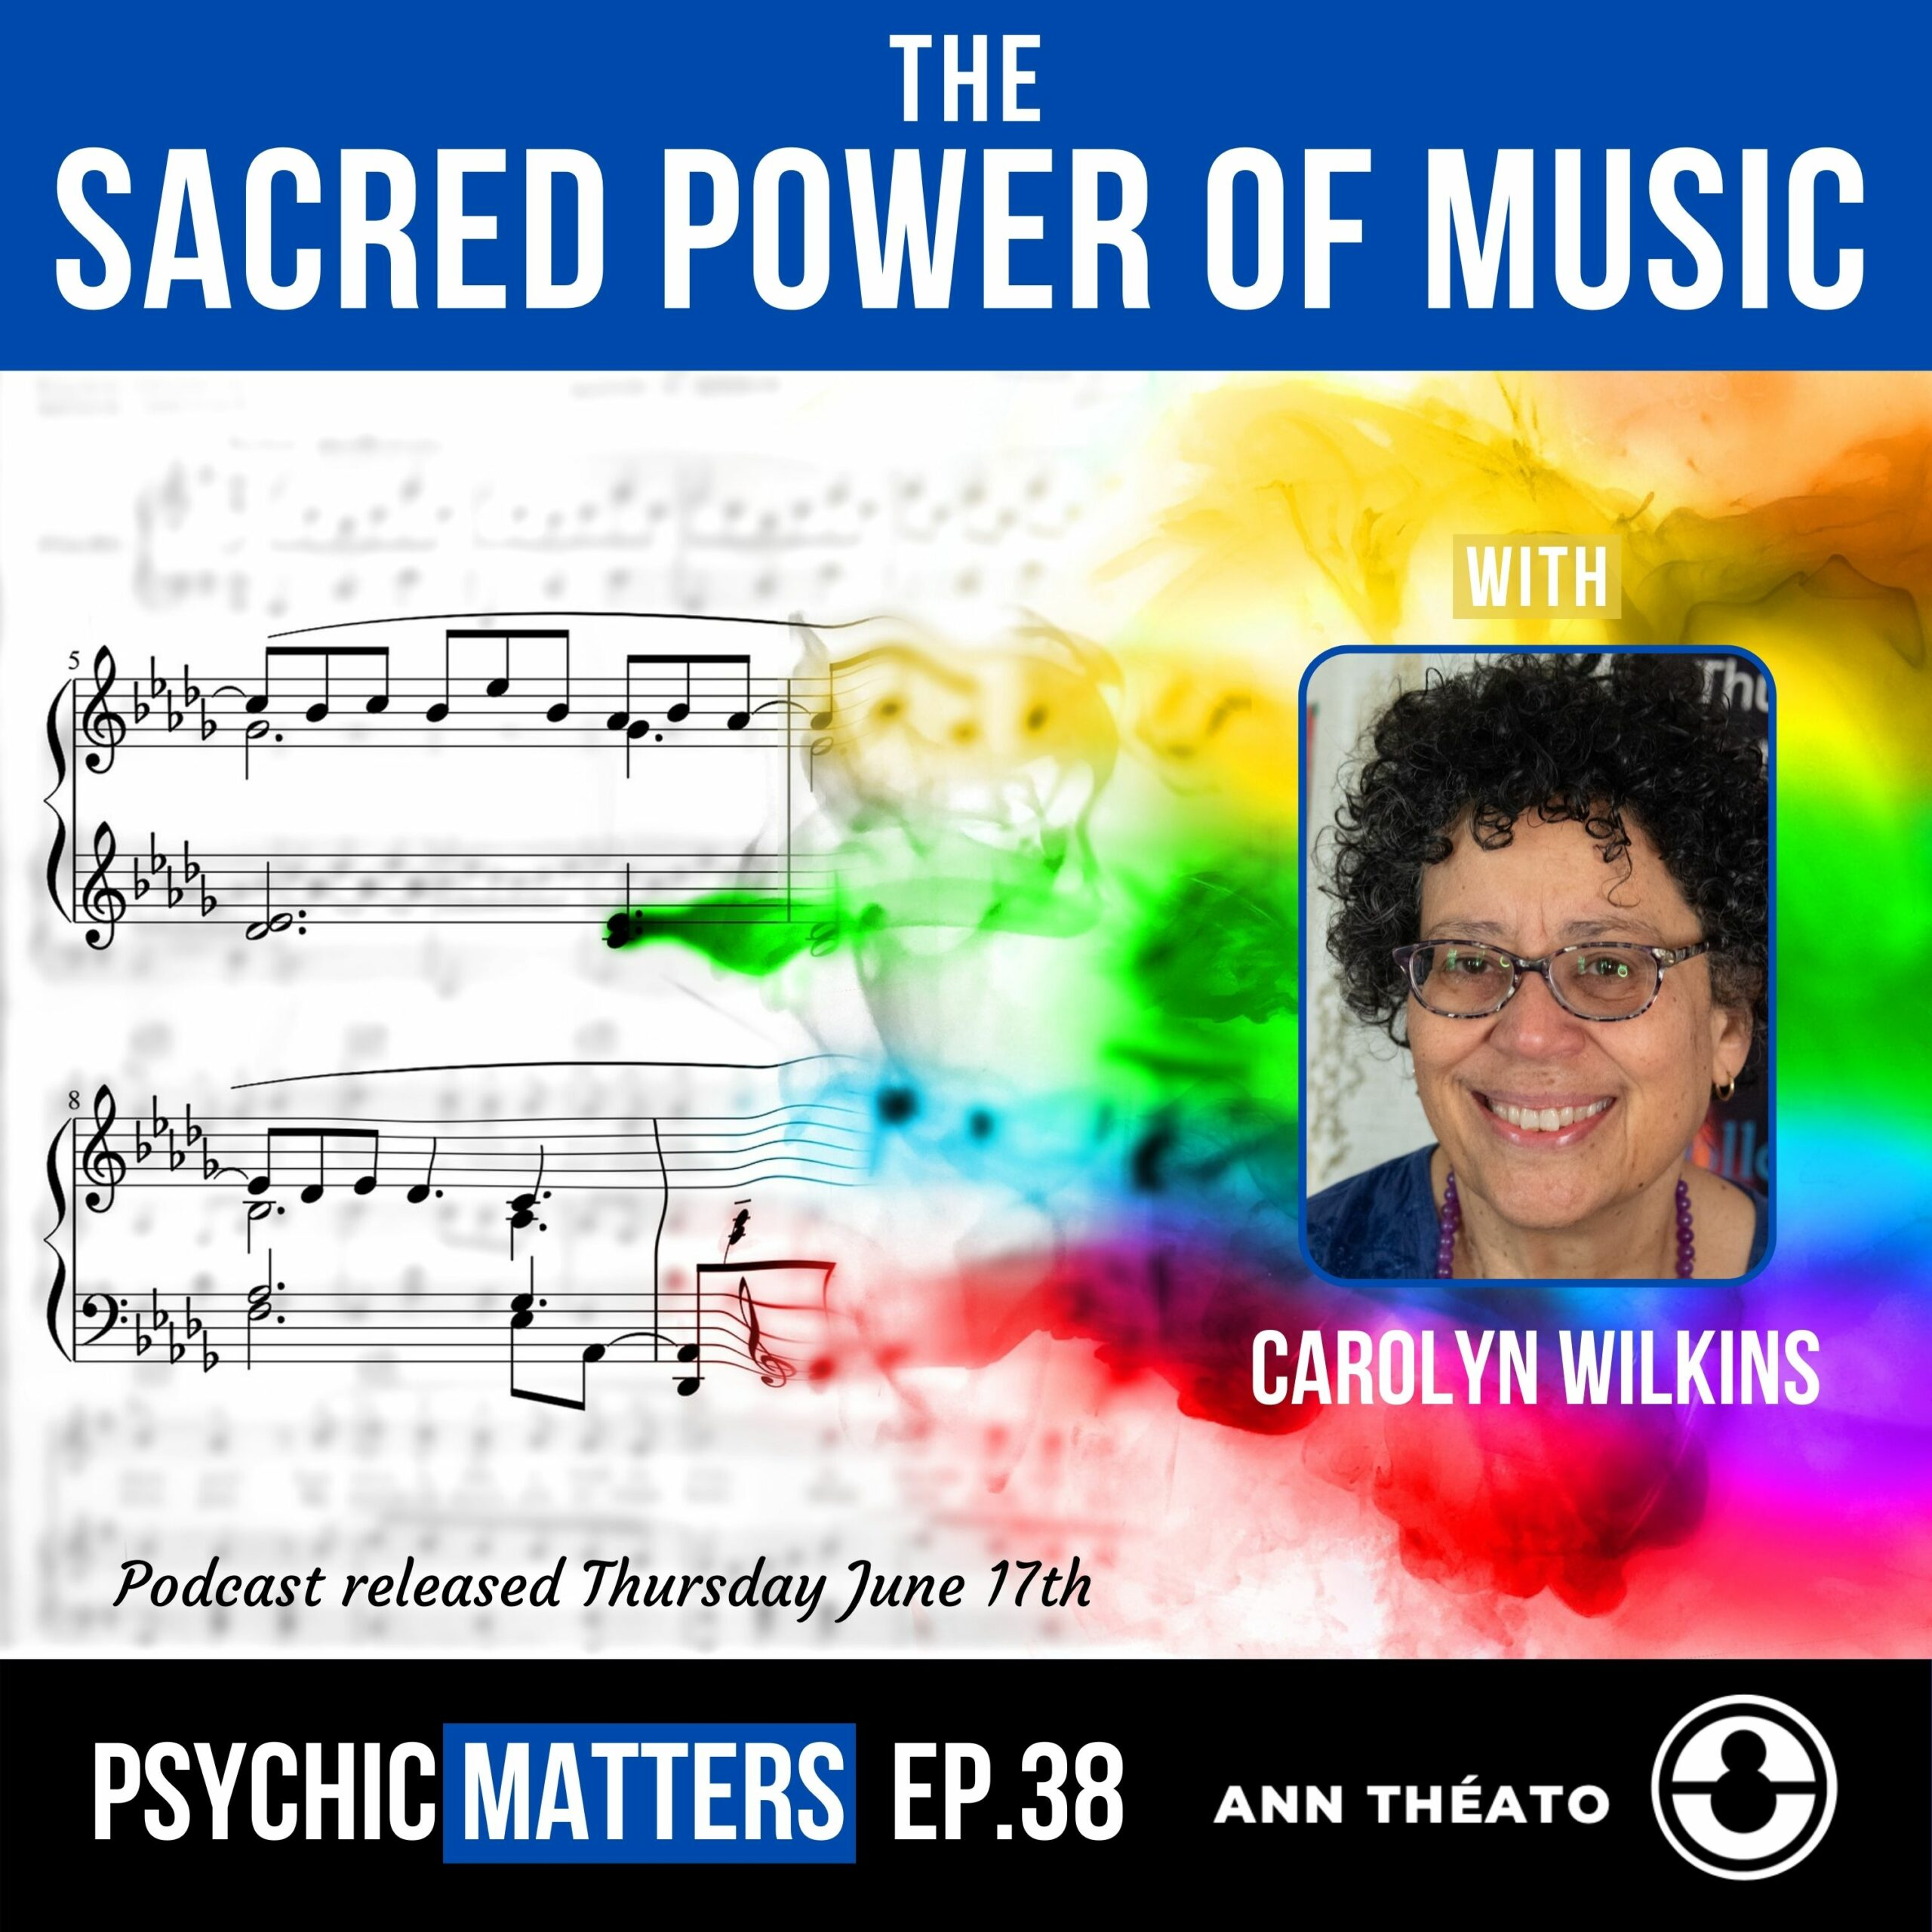 Episode 38 - The Sacred Power Of Music